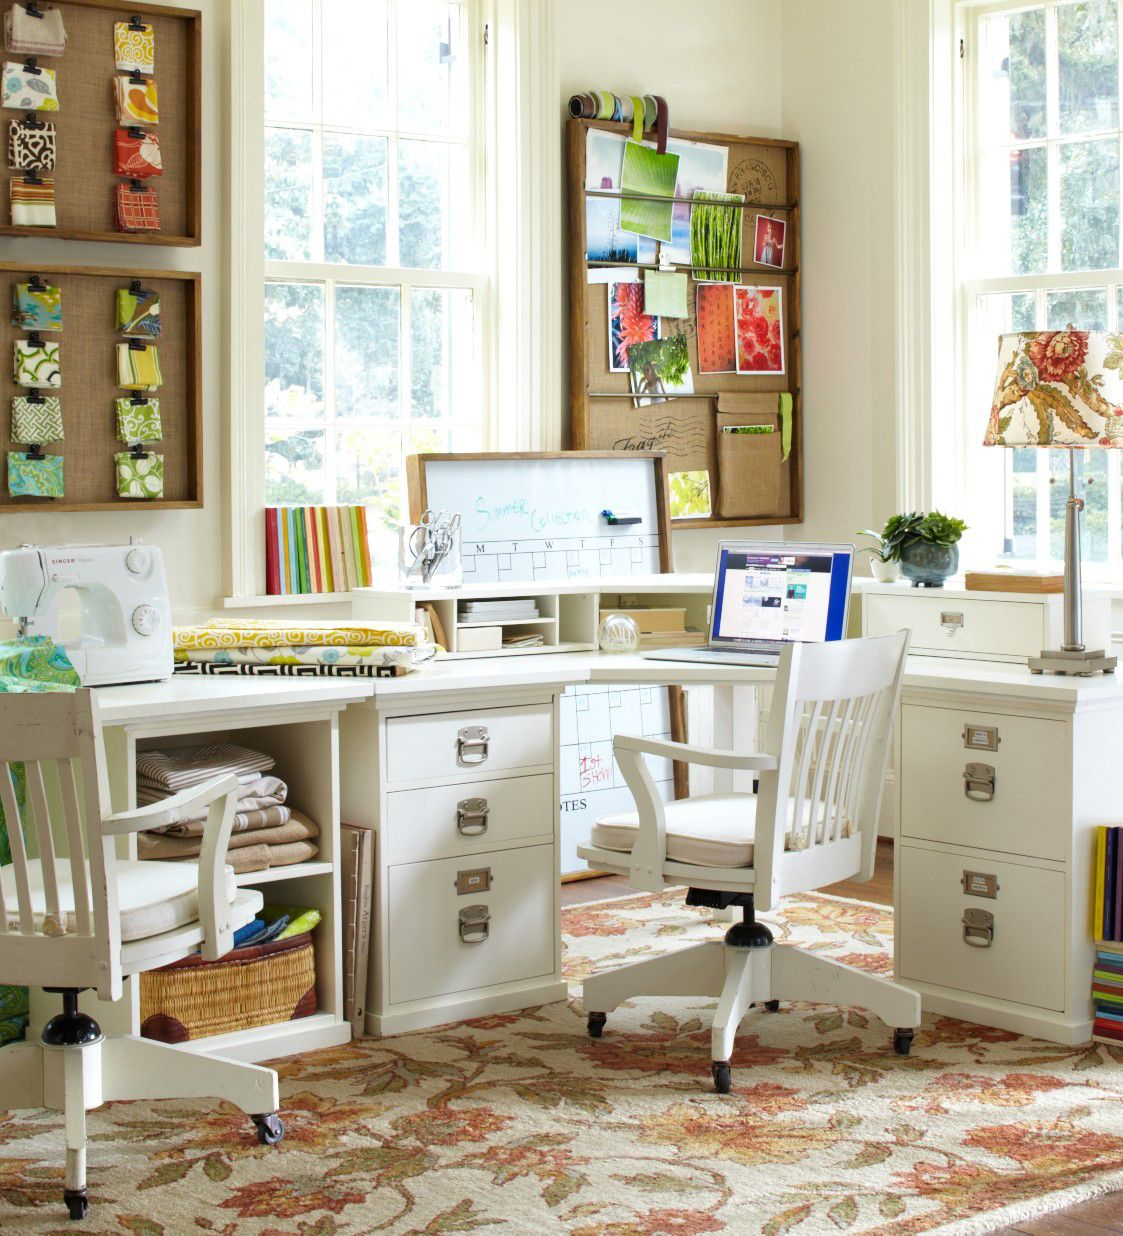 West Elm And Pottery Barn To Open In Australia Home Office Furniture Modular Desk Office Inspiration